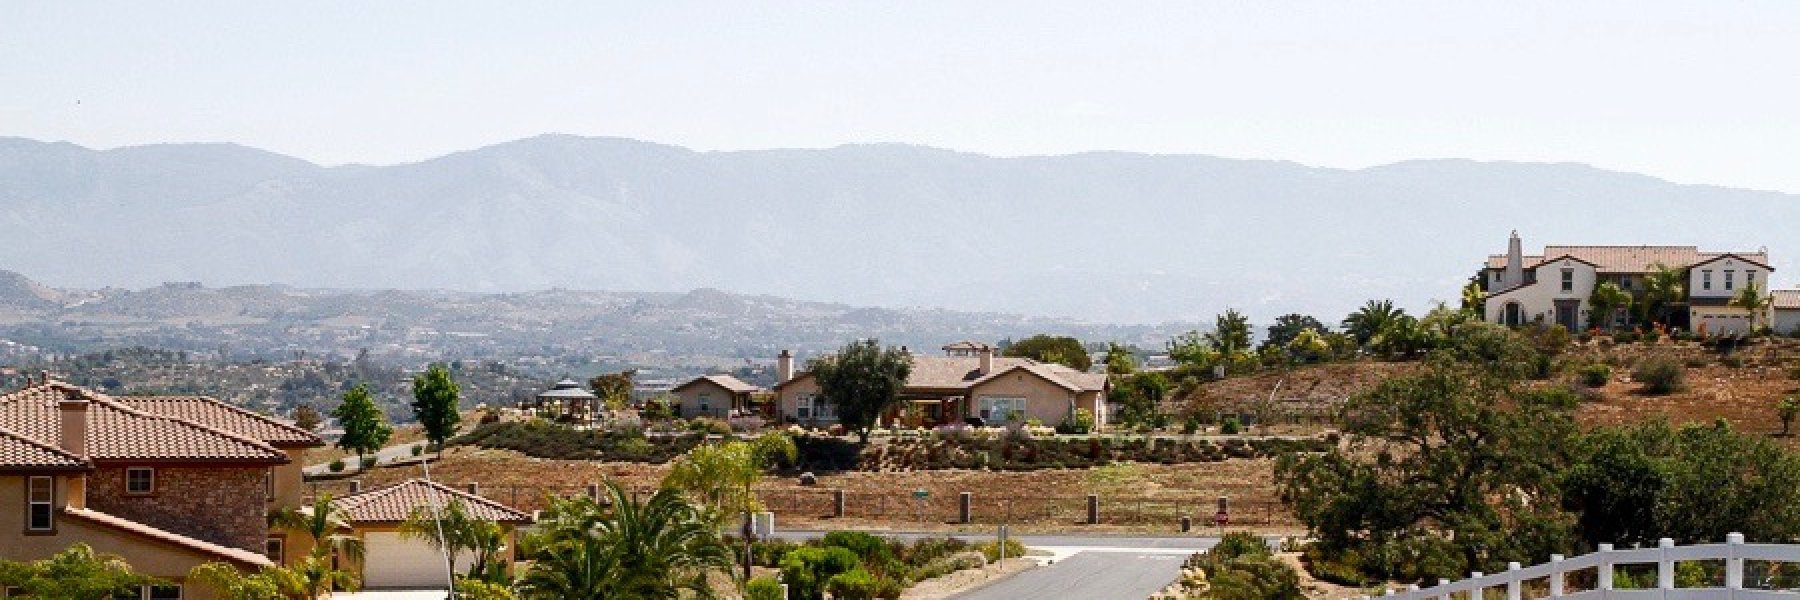 Valley View Ranch is a community of homes in Valley Center California